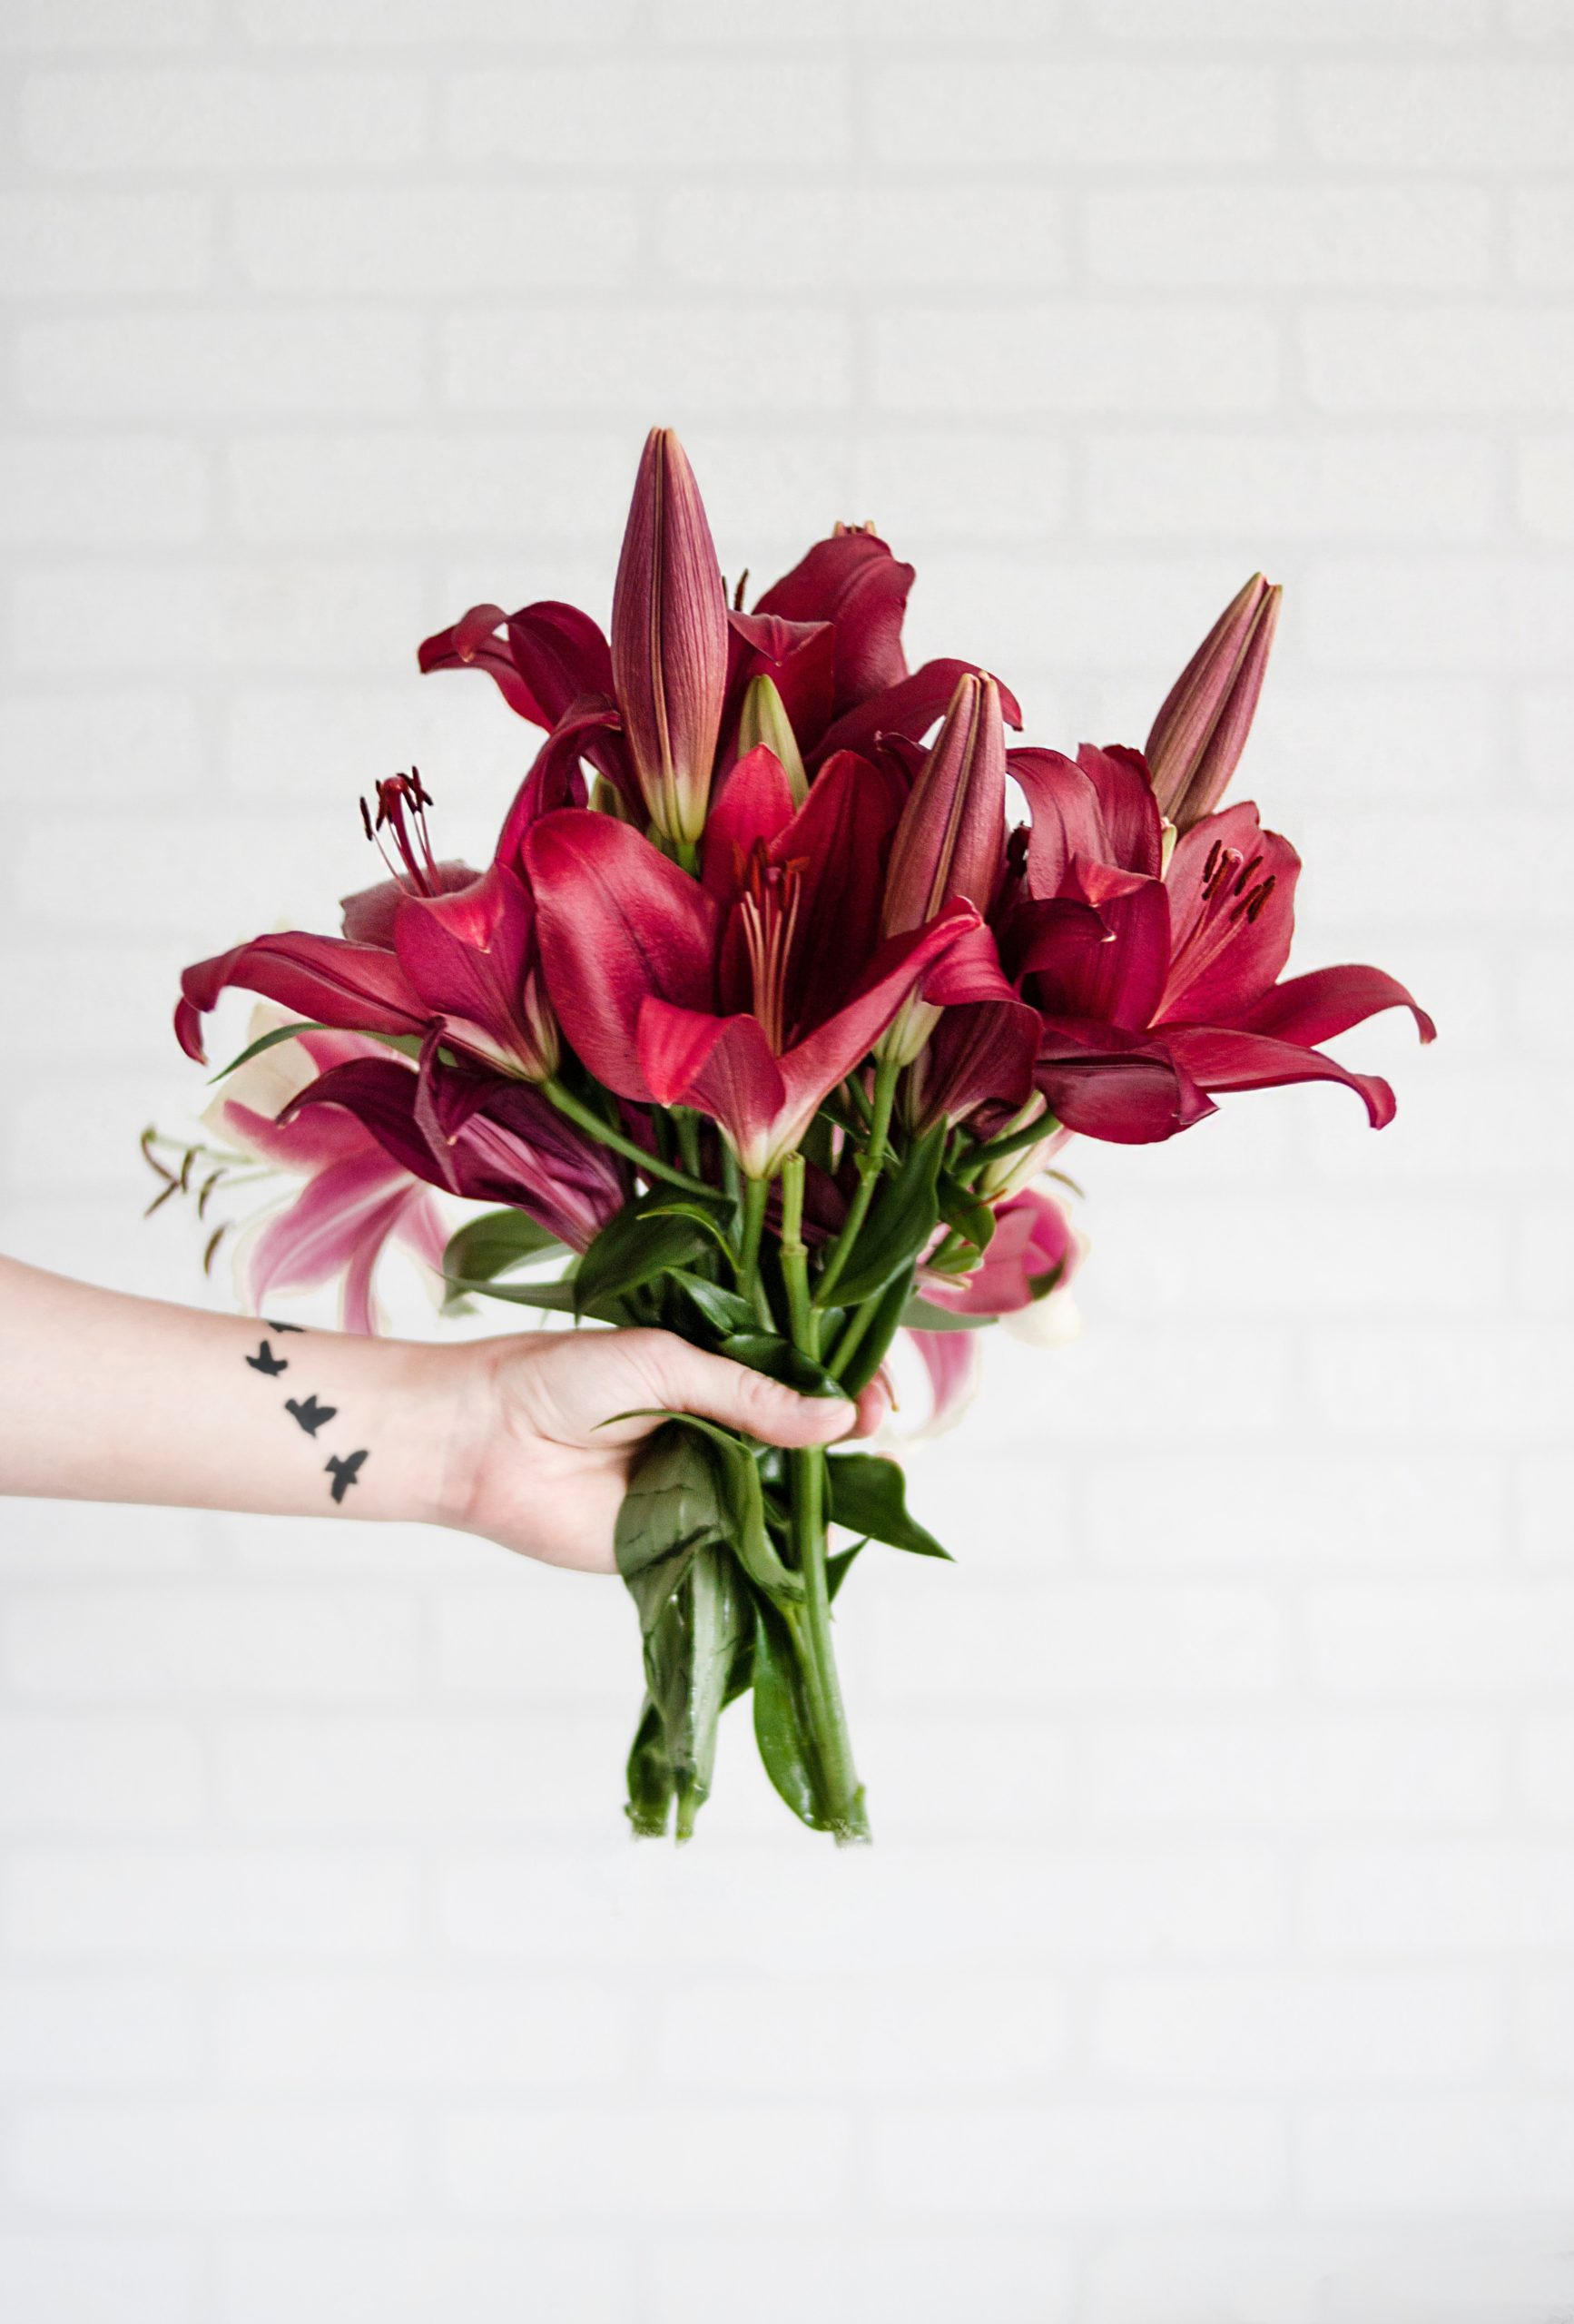 Person holding maroon stargazer flowers